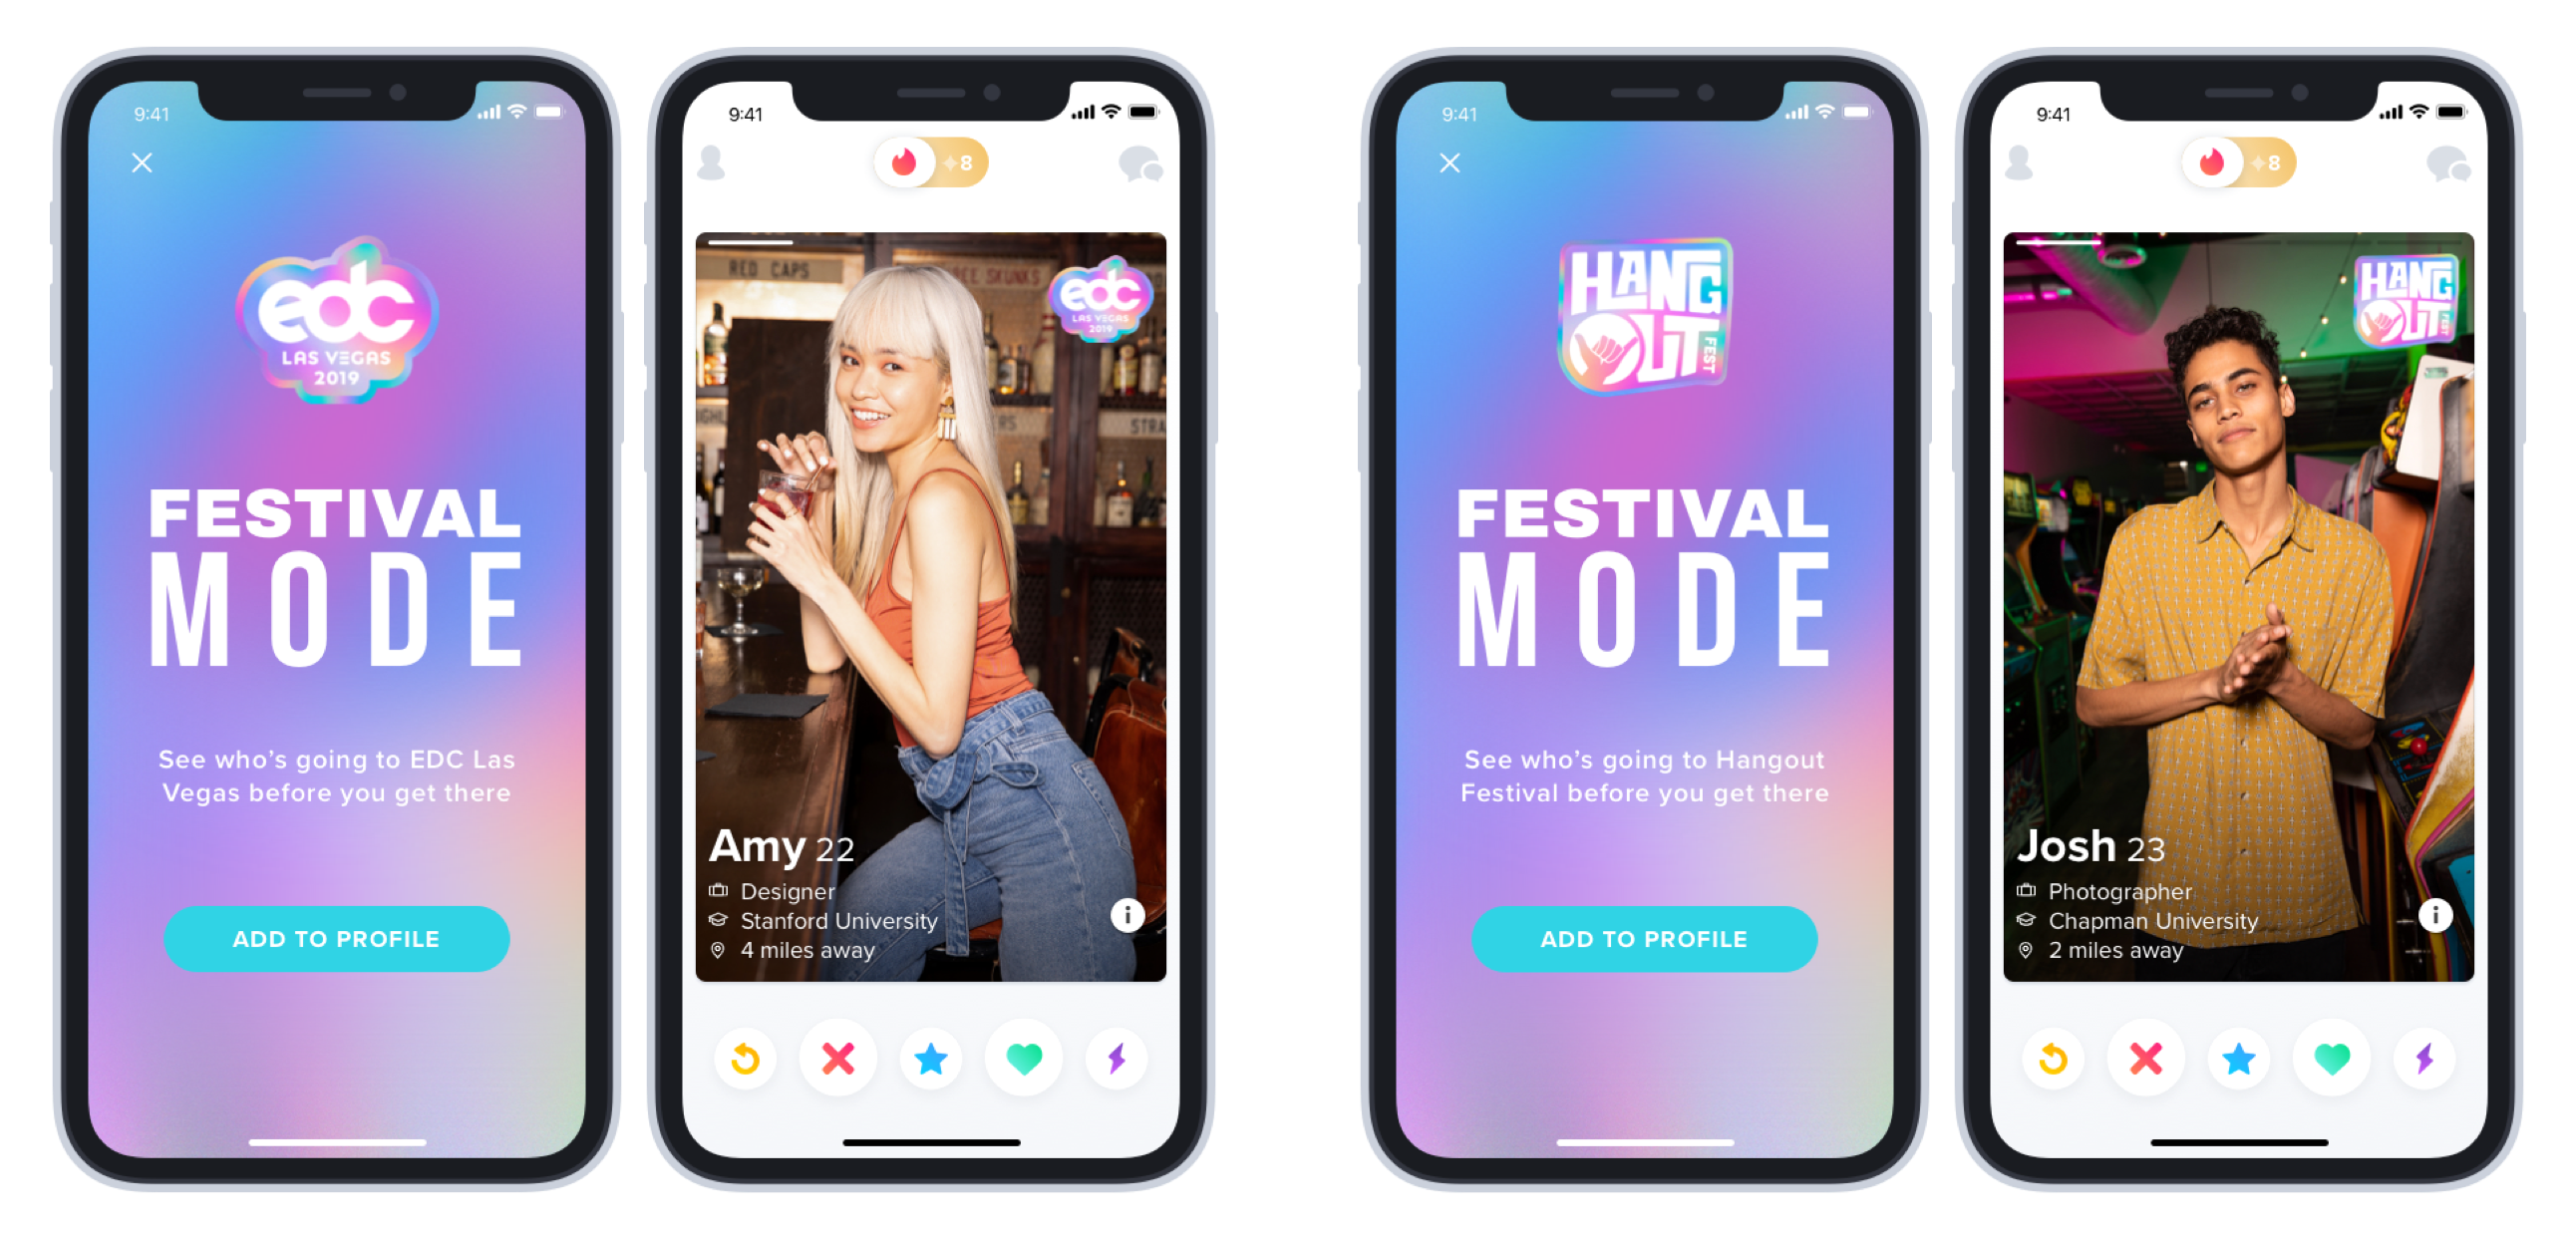 Tinder Launches New Festival Mode